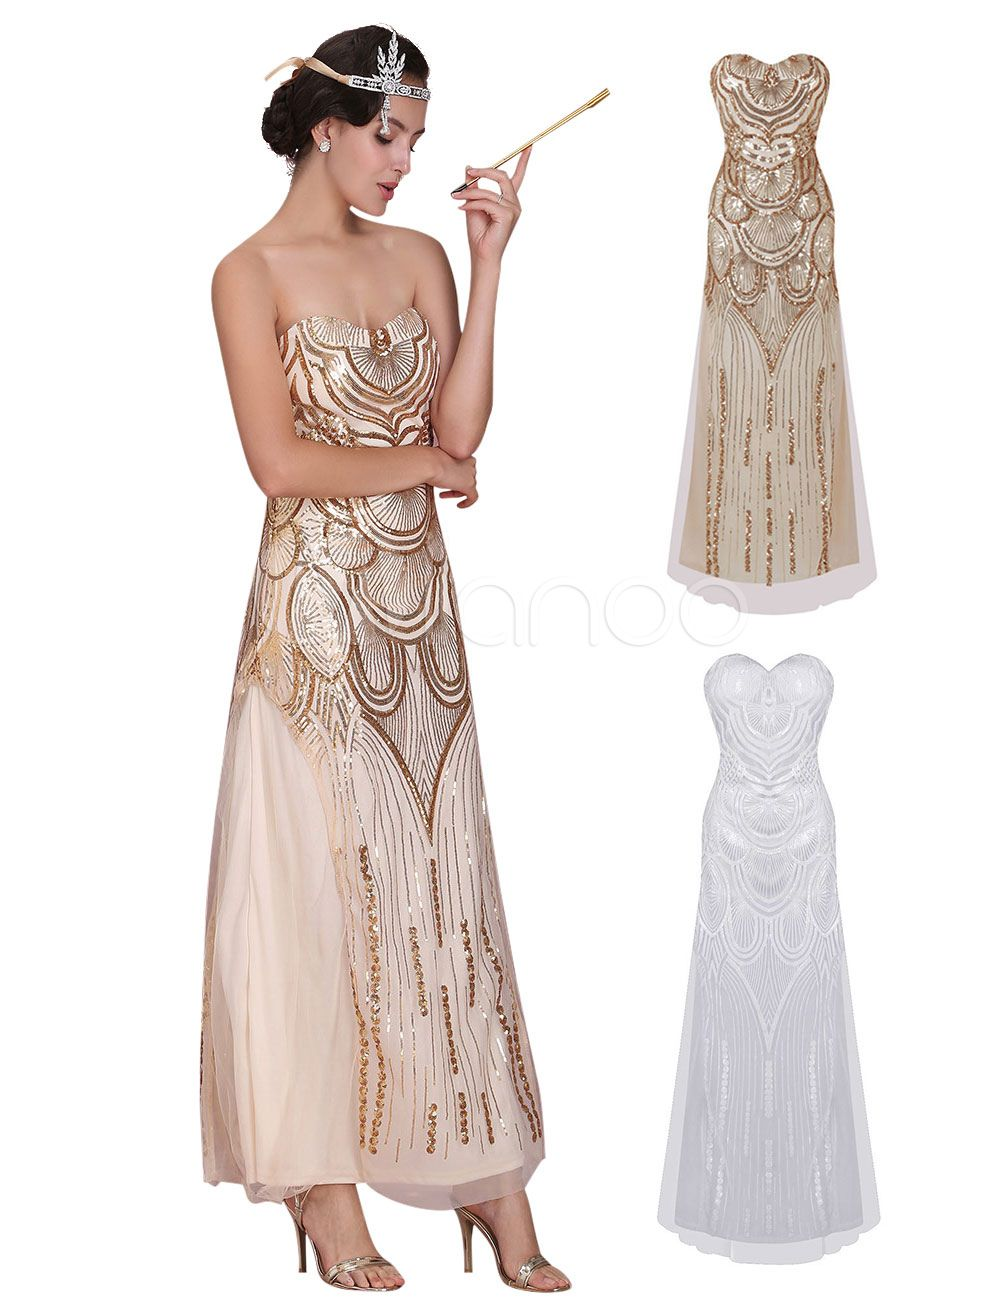 6305fa98e9f Great Gatsby Flapper Dress 1920s Vintage Costume Women s Sequined Gold Maxi  Dress Halloween - Price concerns me about quality